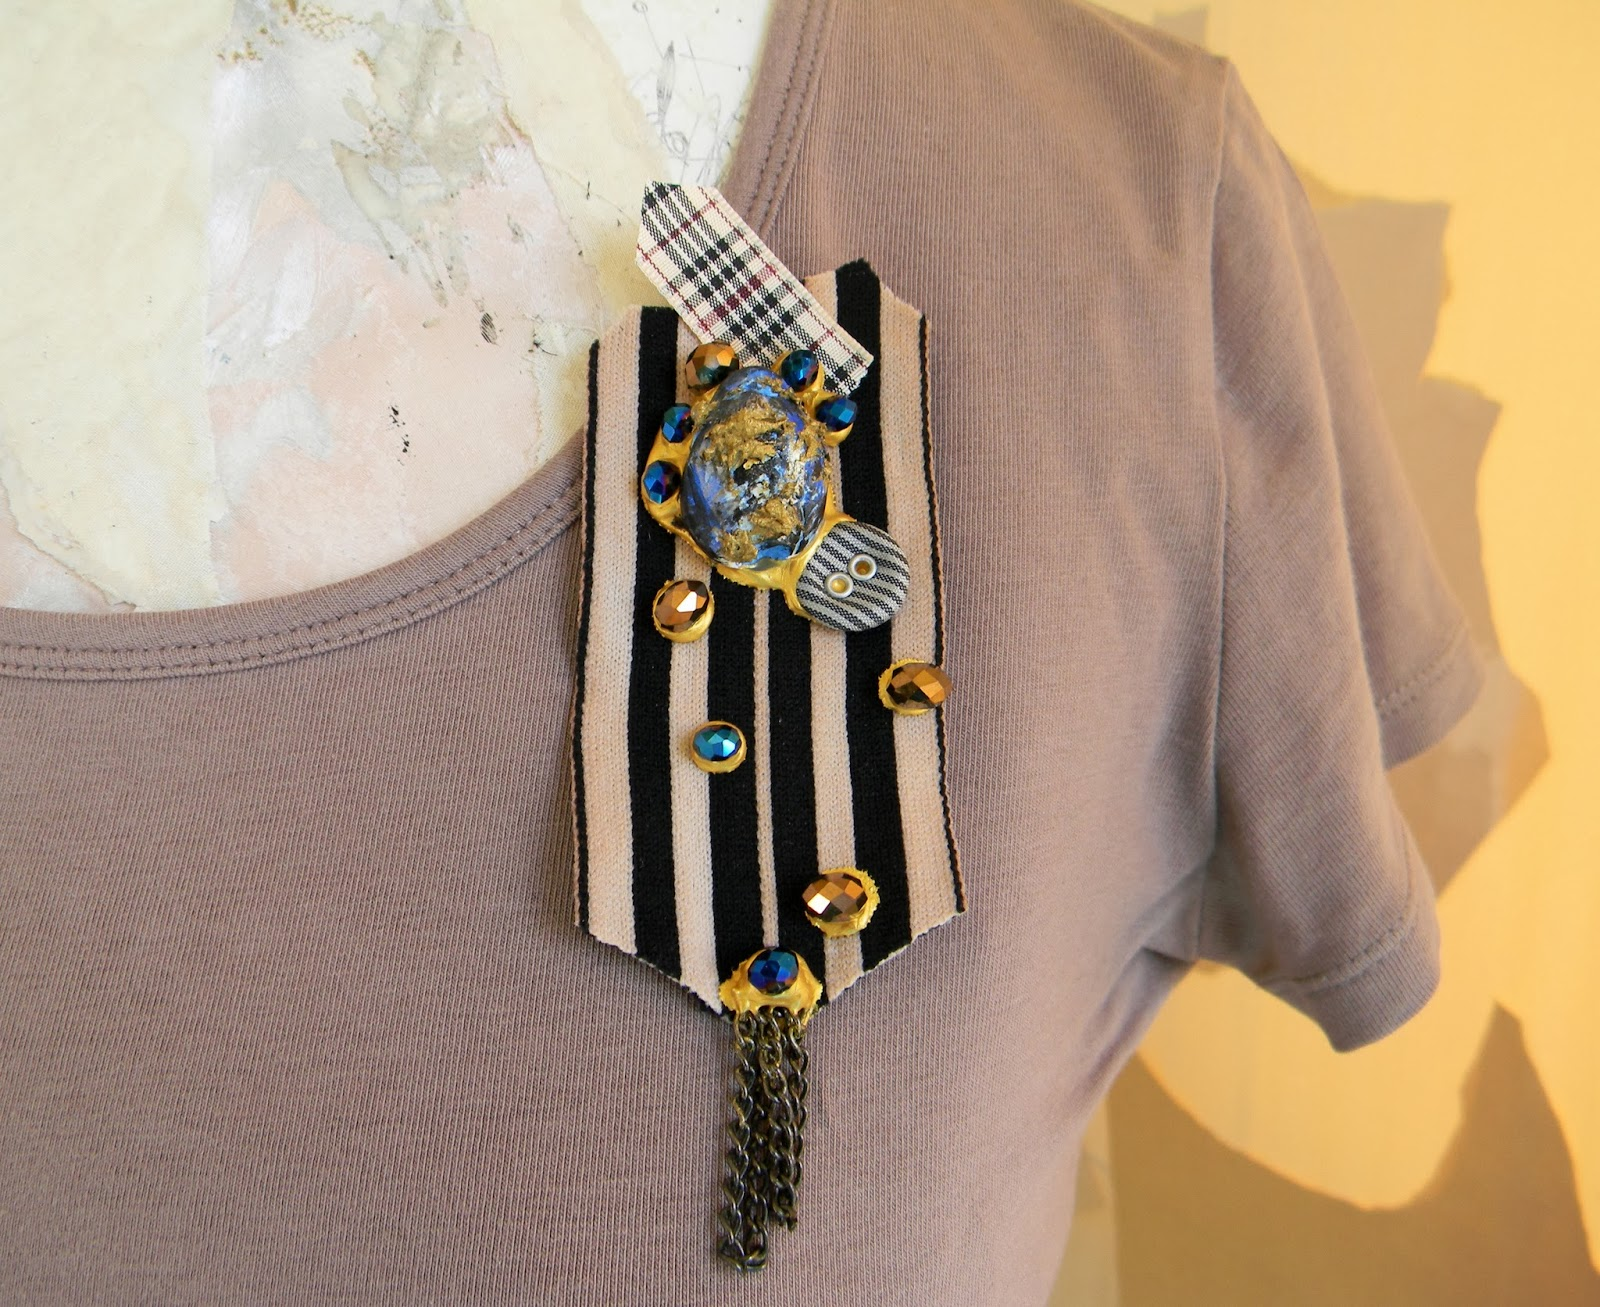 Unique handmade Gothic Steampunk Brooch Striped Textile Pin with Applique